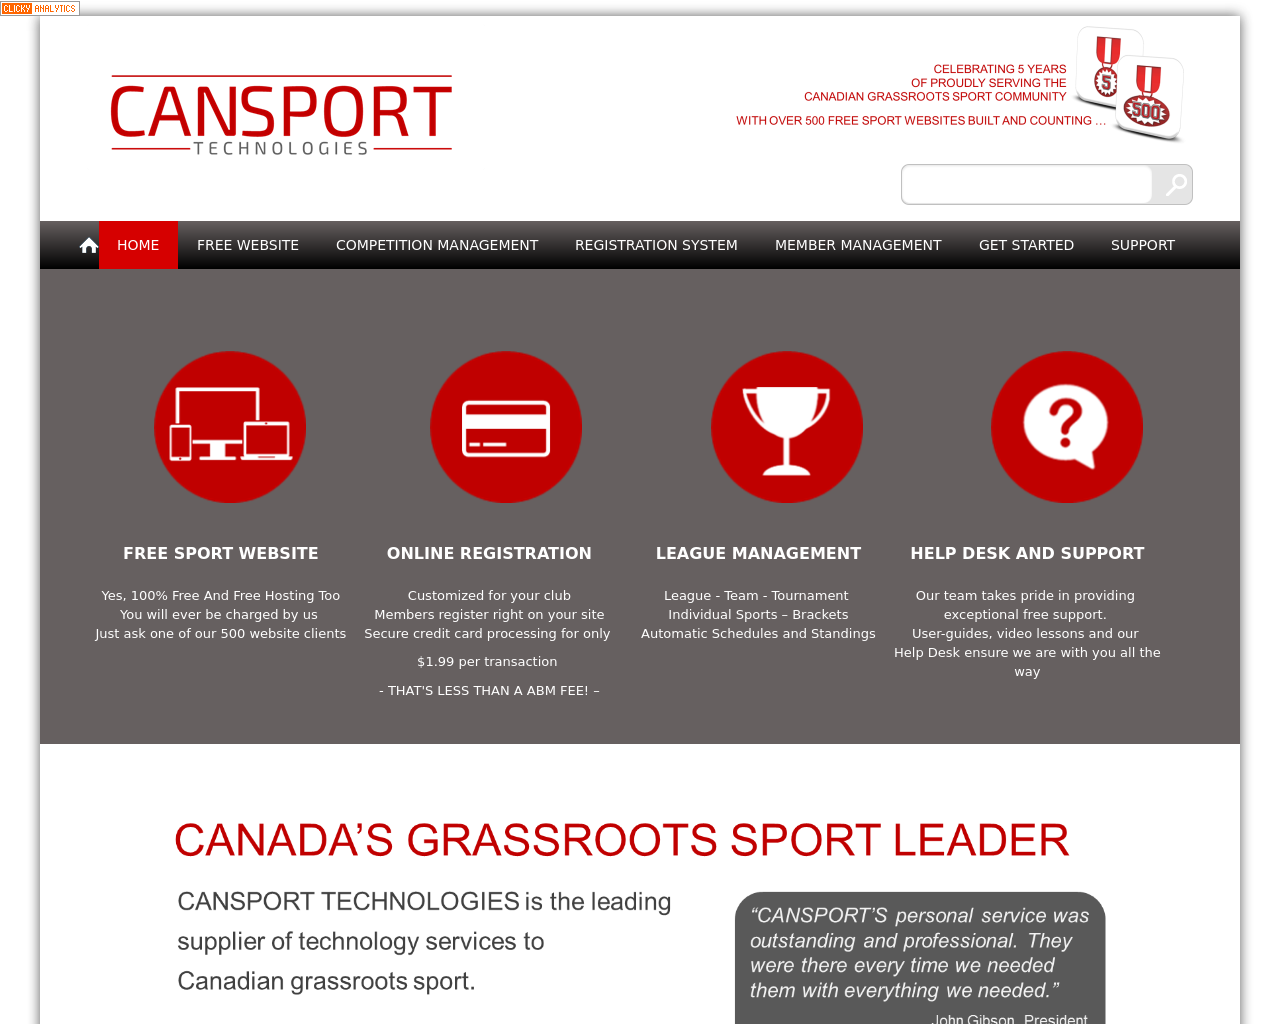 CanSport-Live-Advertising-Reviews-Pricing